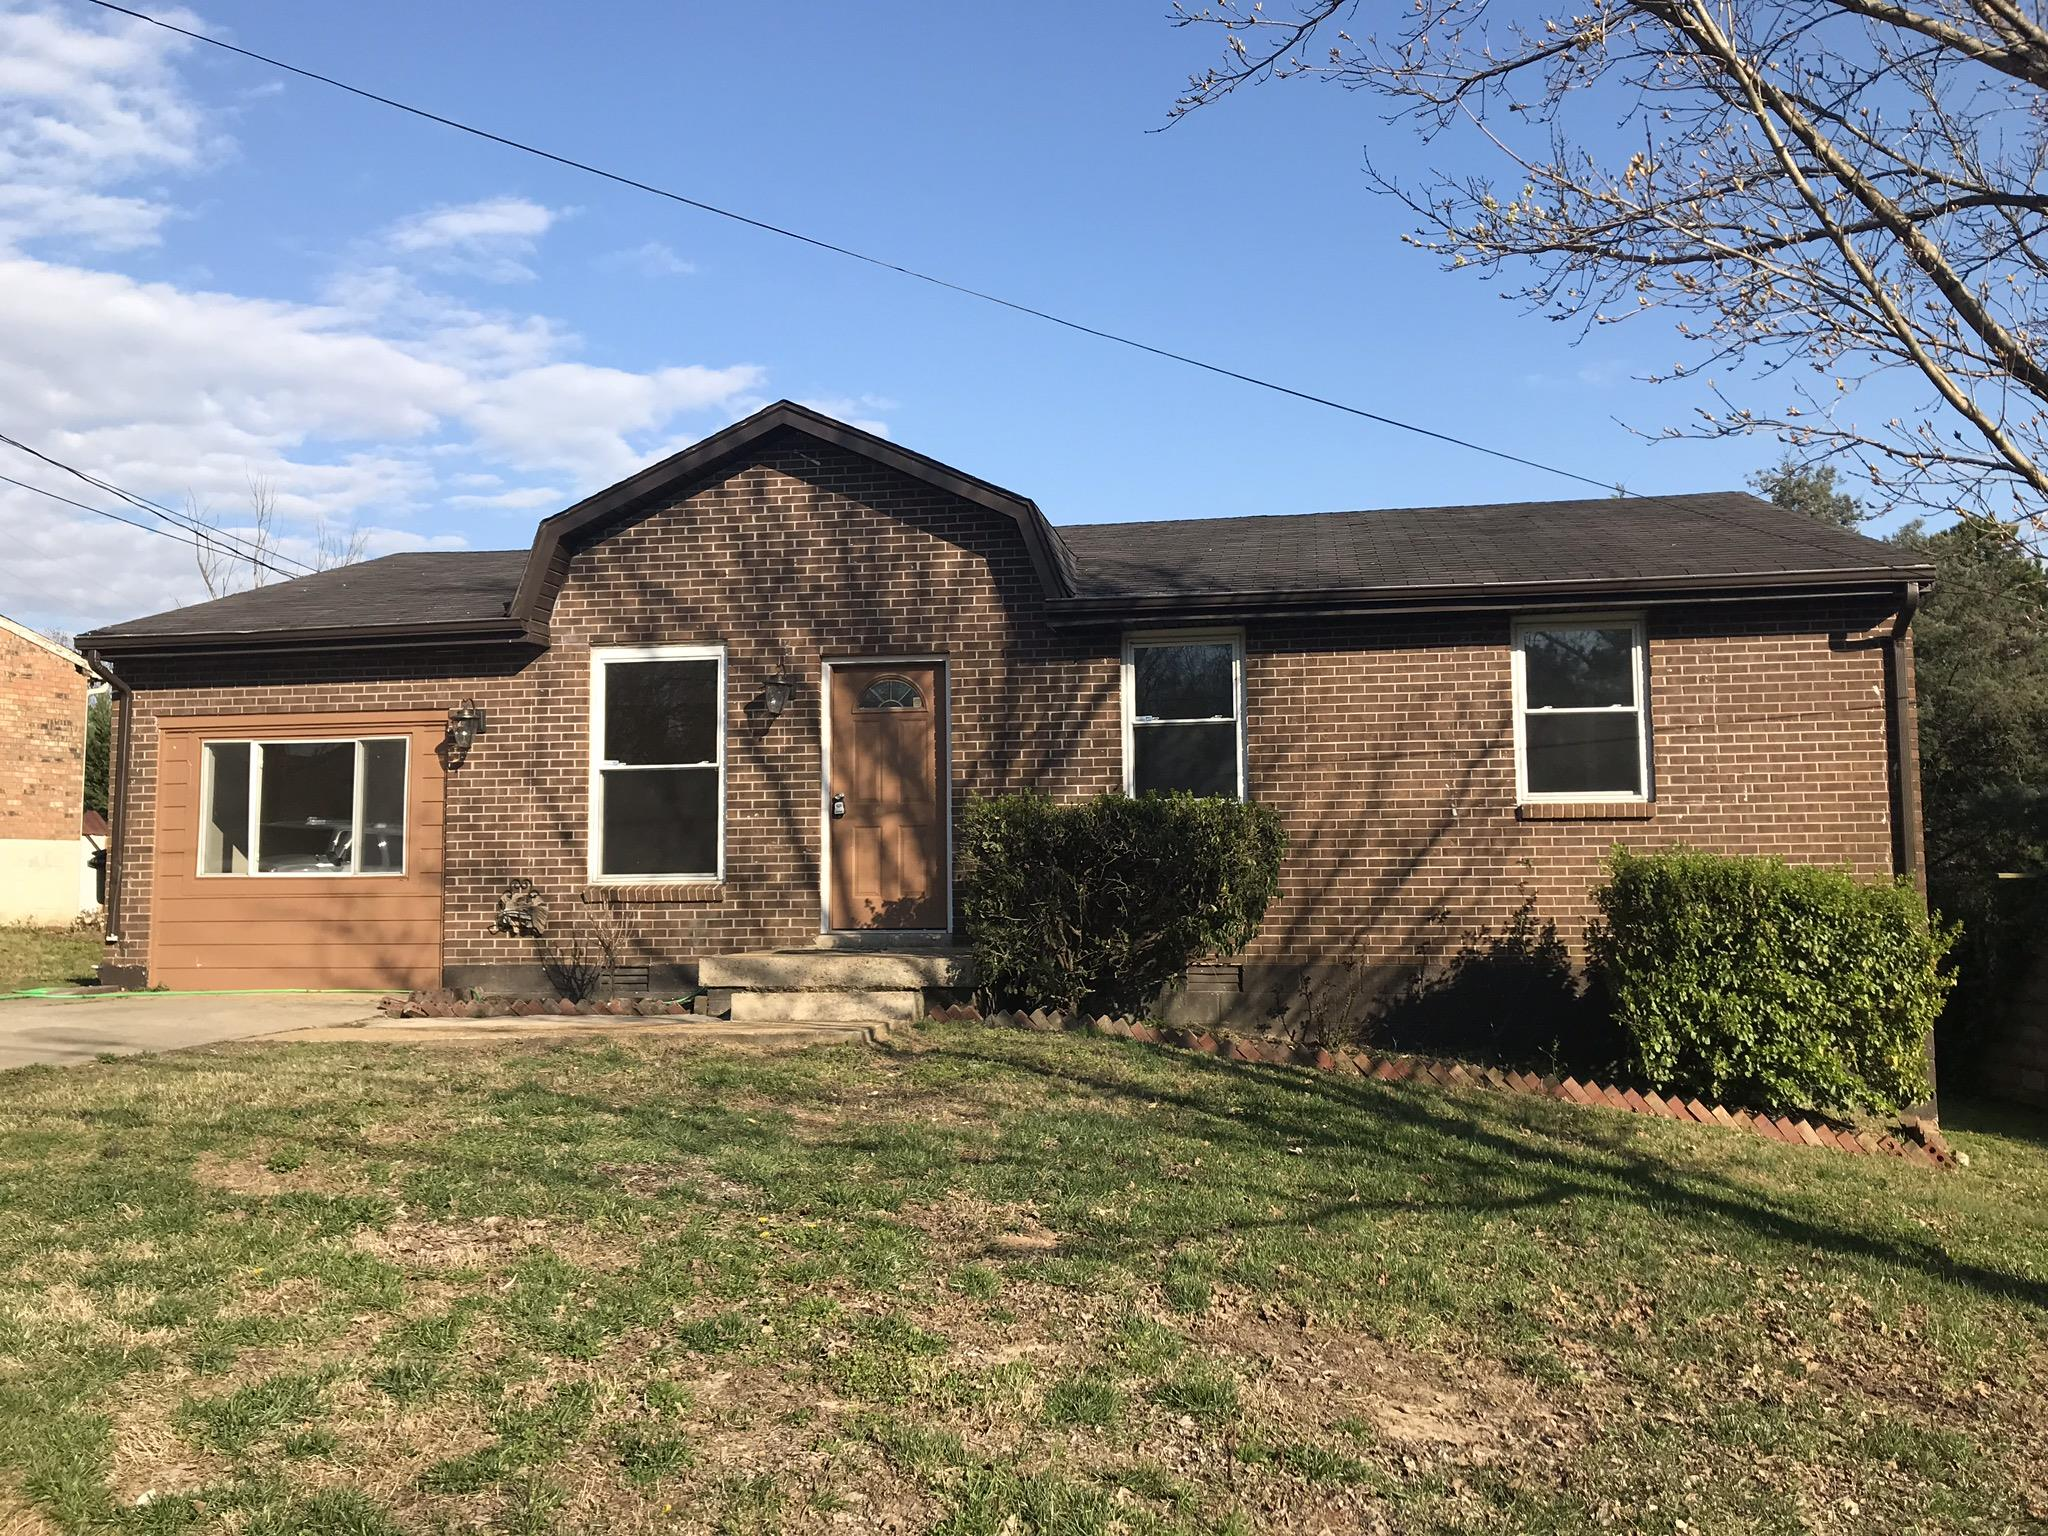 4708 Apollo Dr, Nashville-Antioch in Davidson County County, TN 37013 Home for Sale